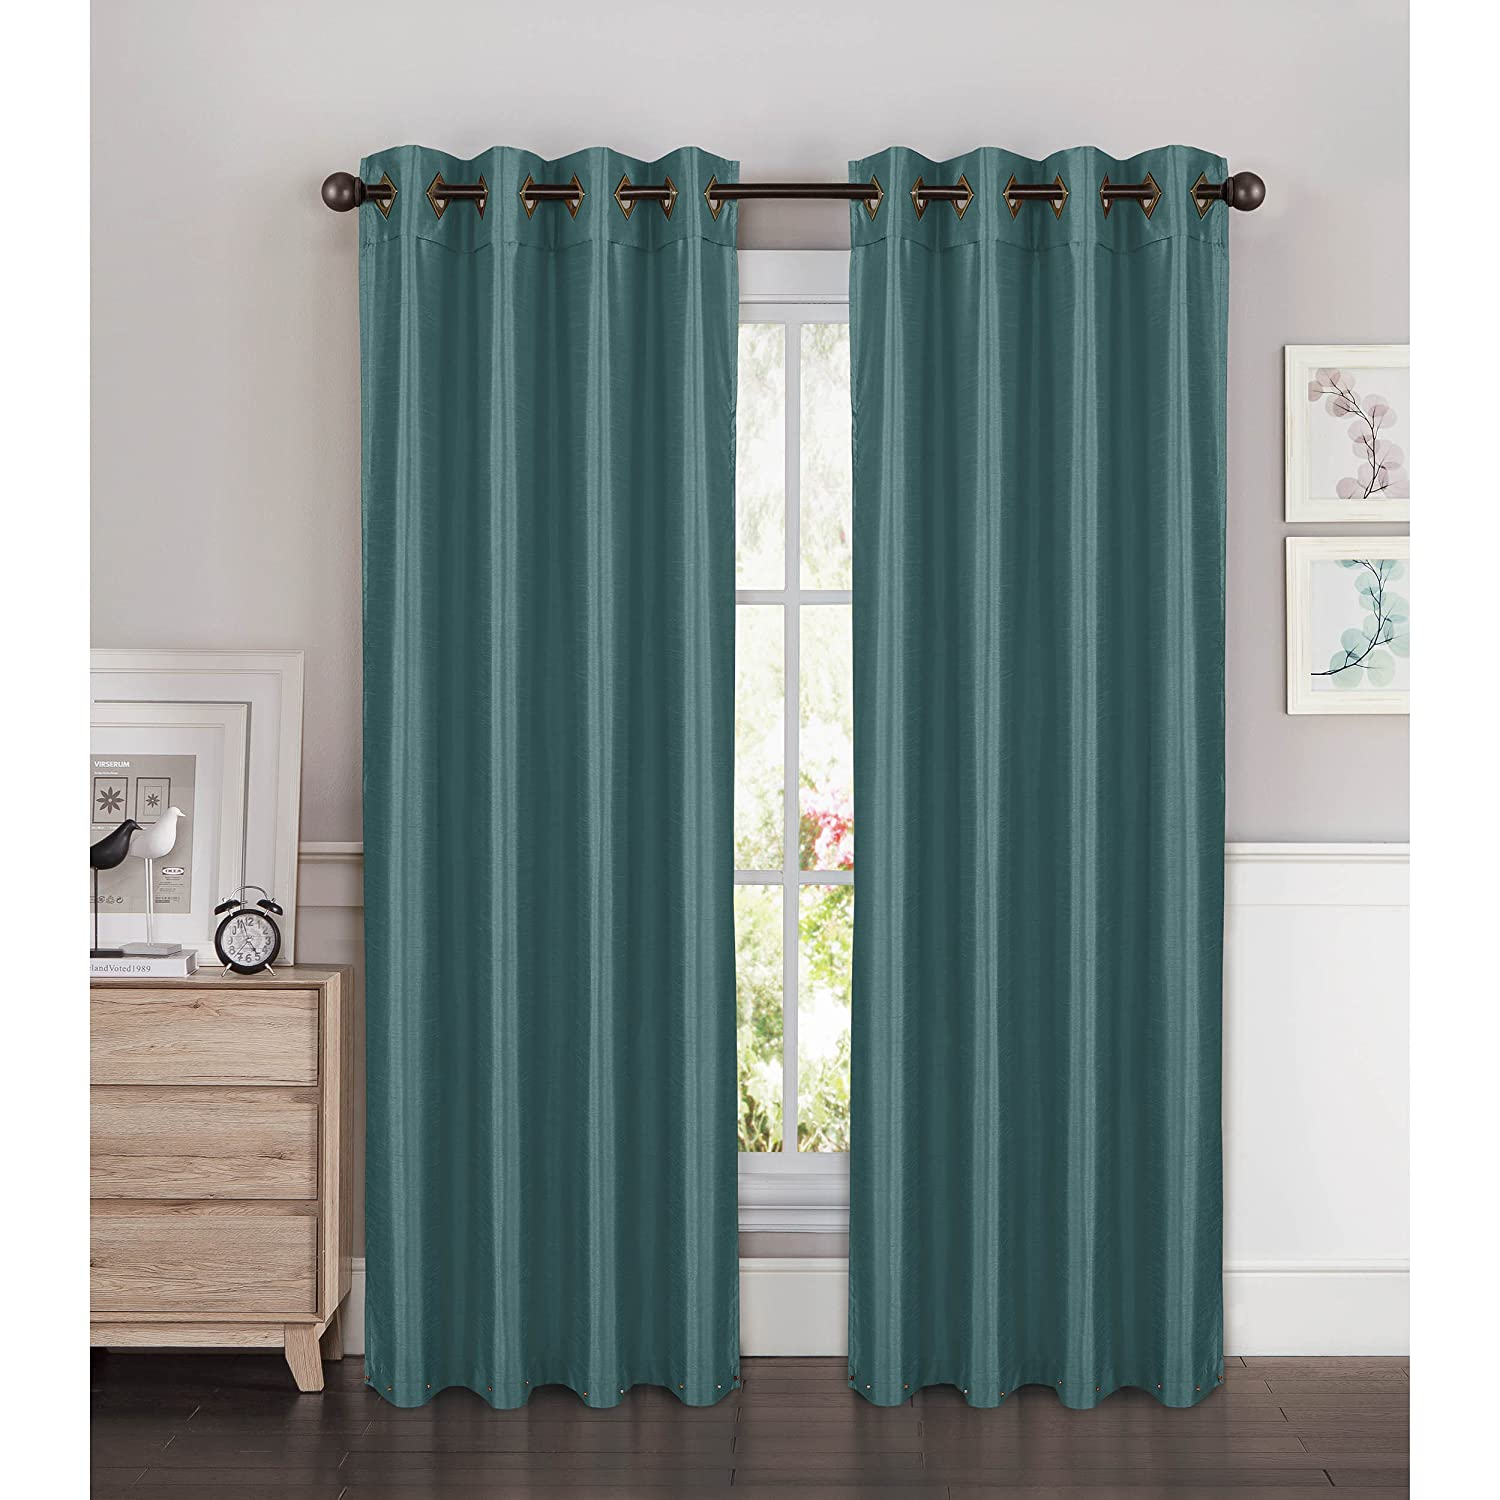 eyelet home heather close curtains curtain at teal product up paradise